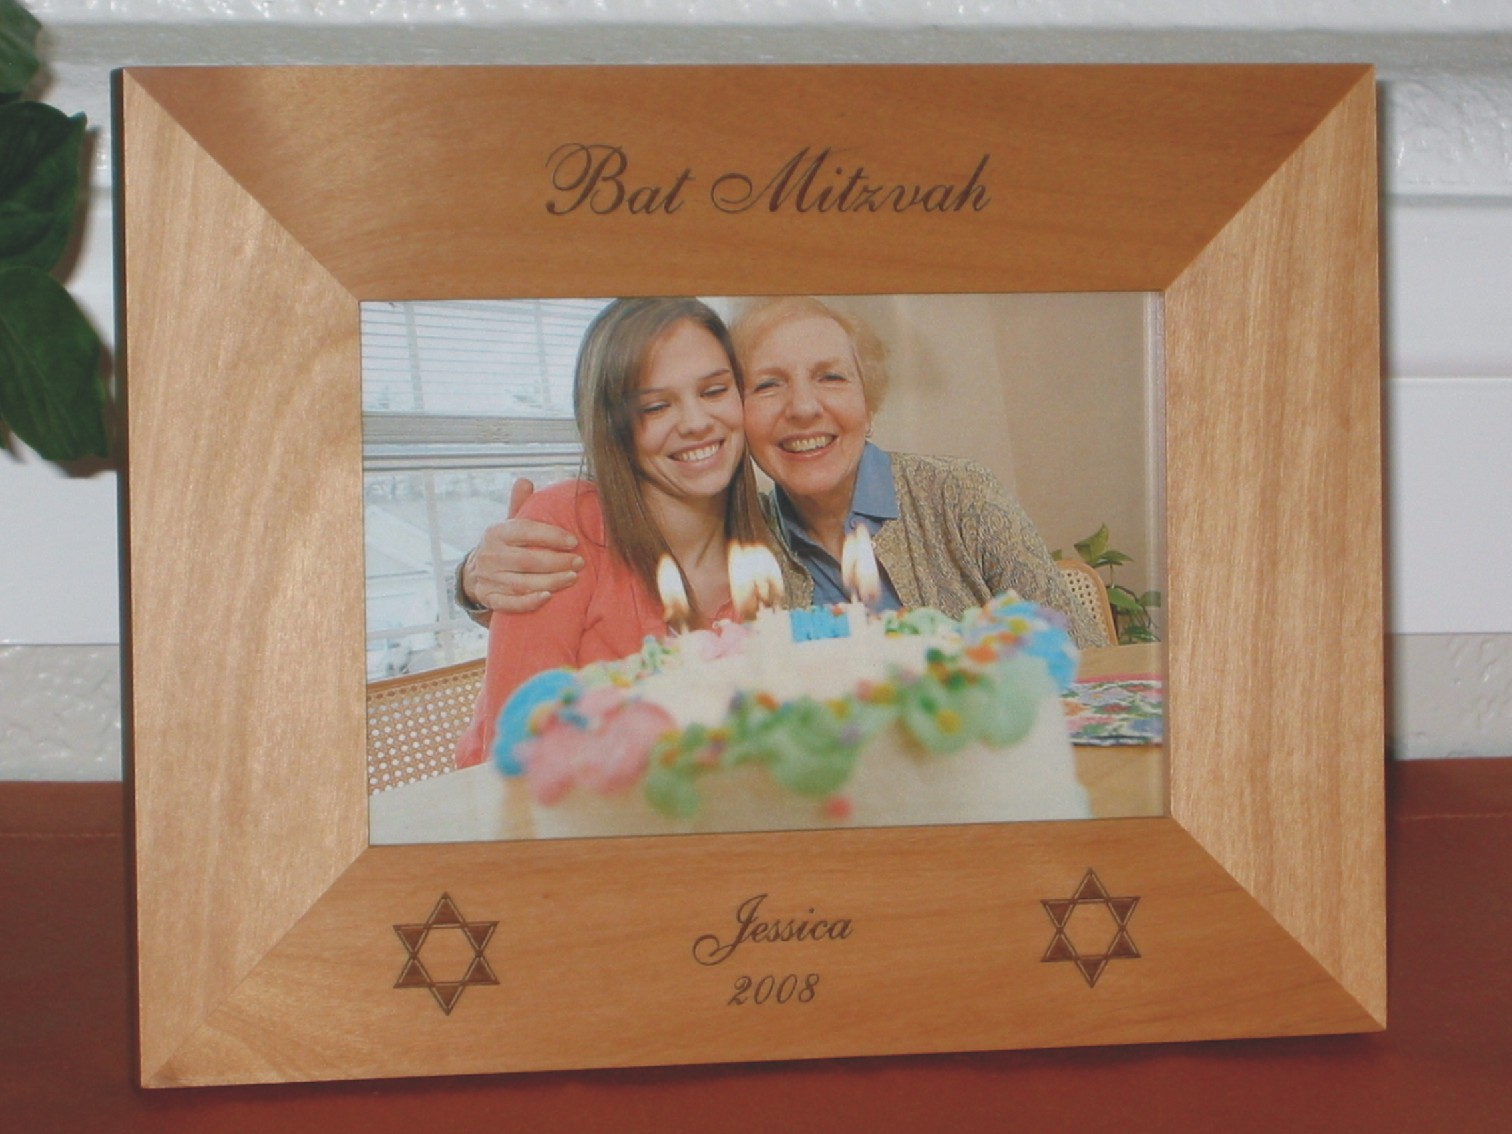 bat mitzvah picture frame personalized frame laser engraved star of david